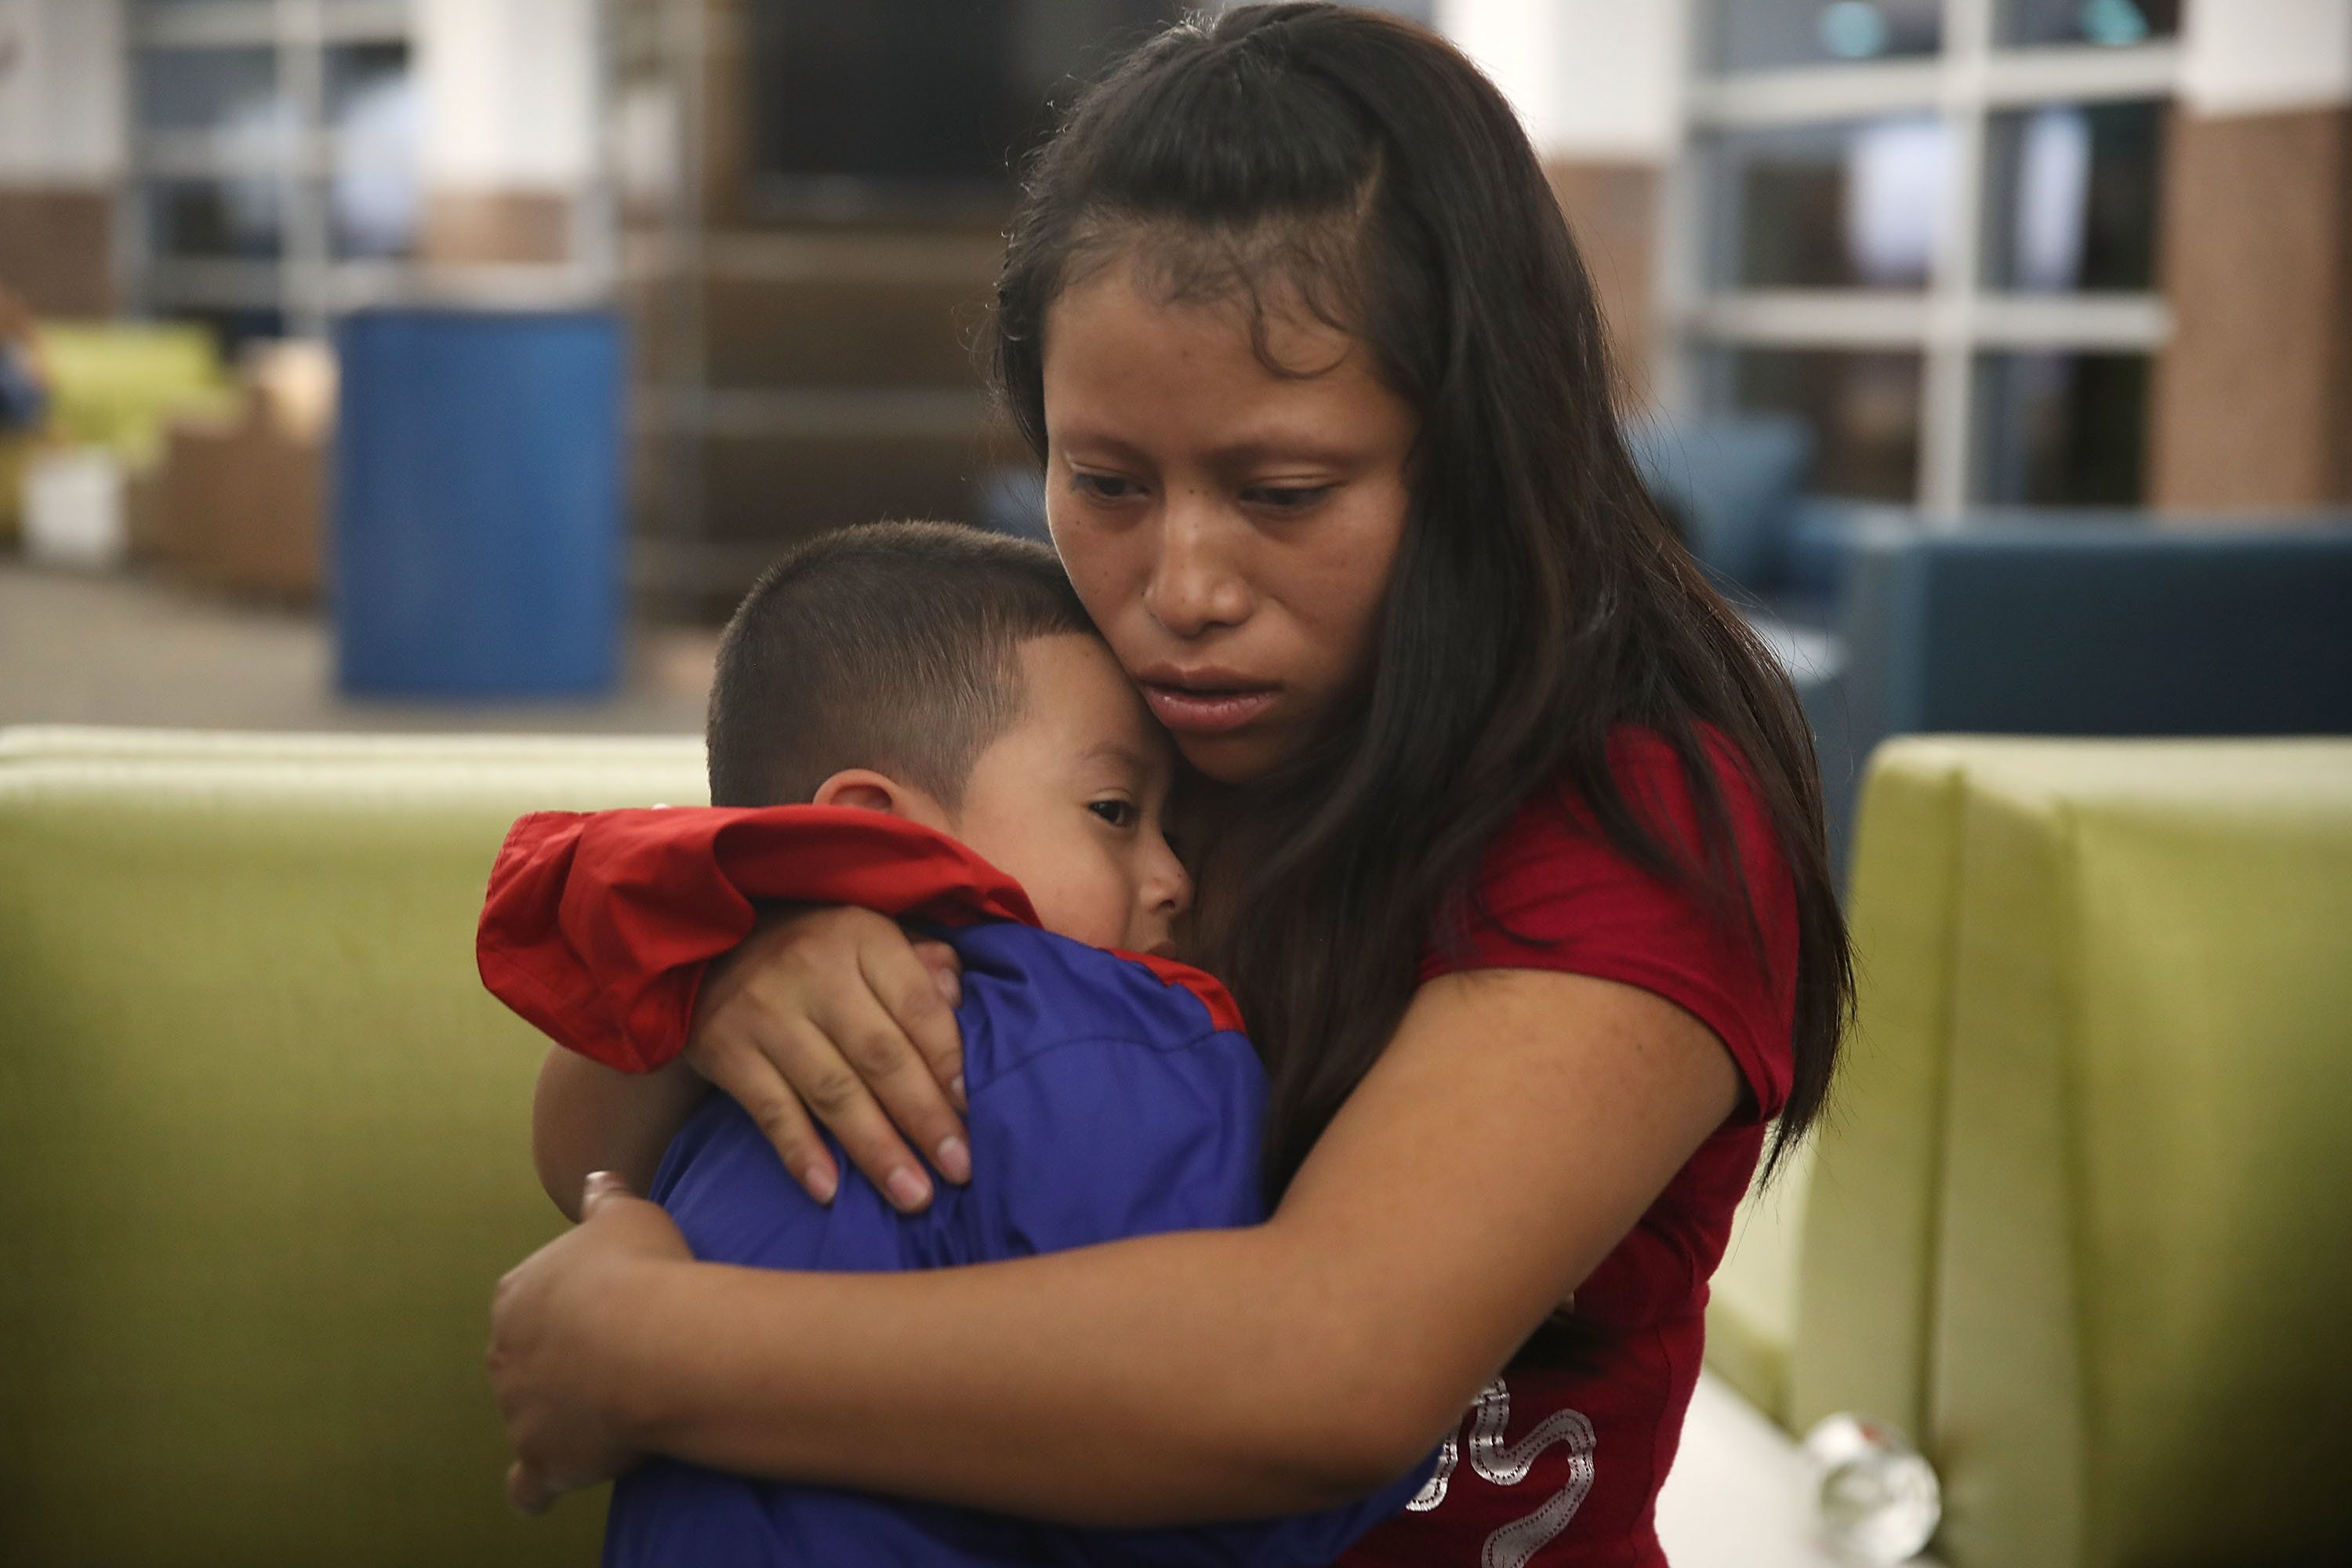 A Guatemalan woman is reunited with her son in El Paso, Texas, on July 26 after they were separated for a month under Pr